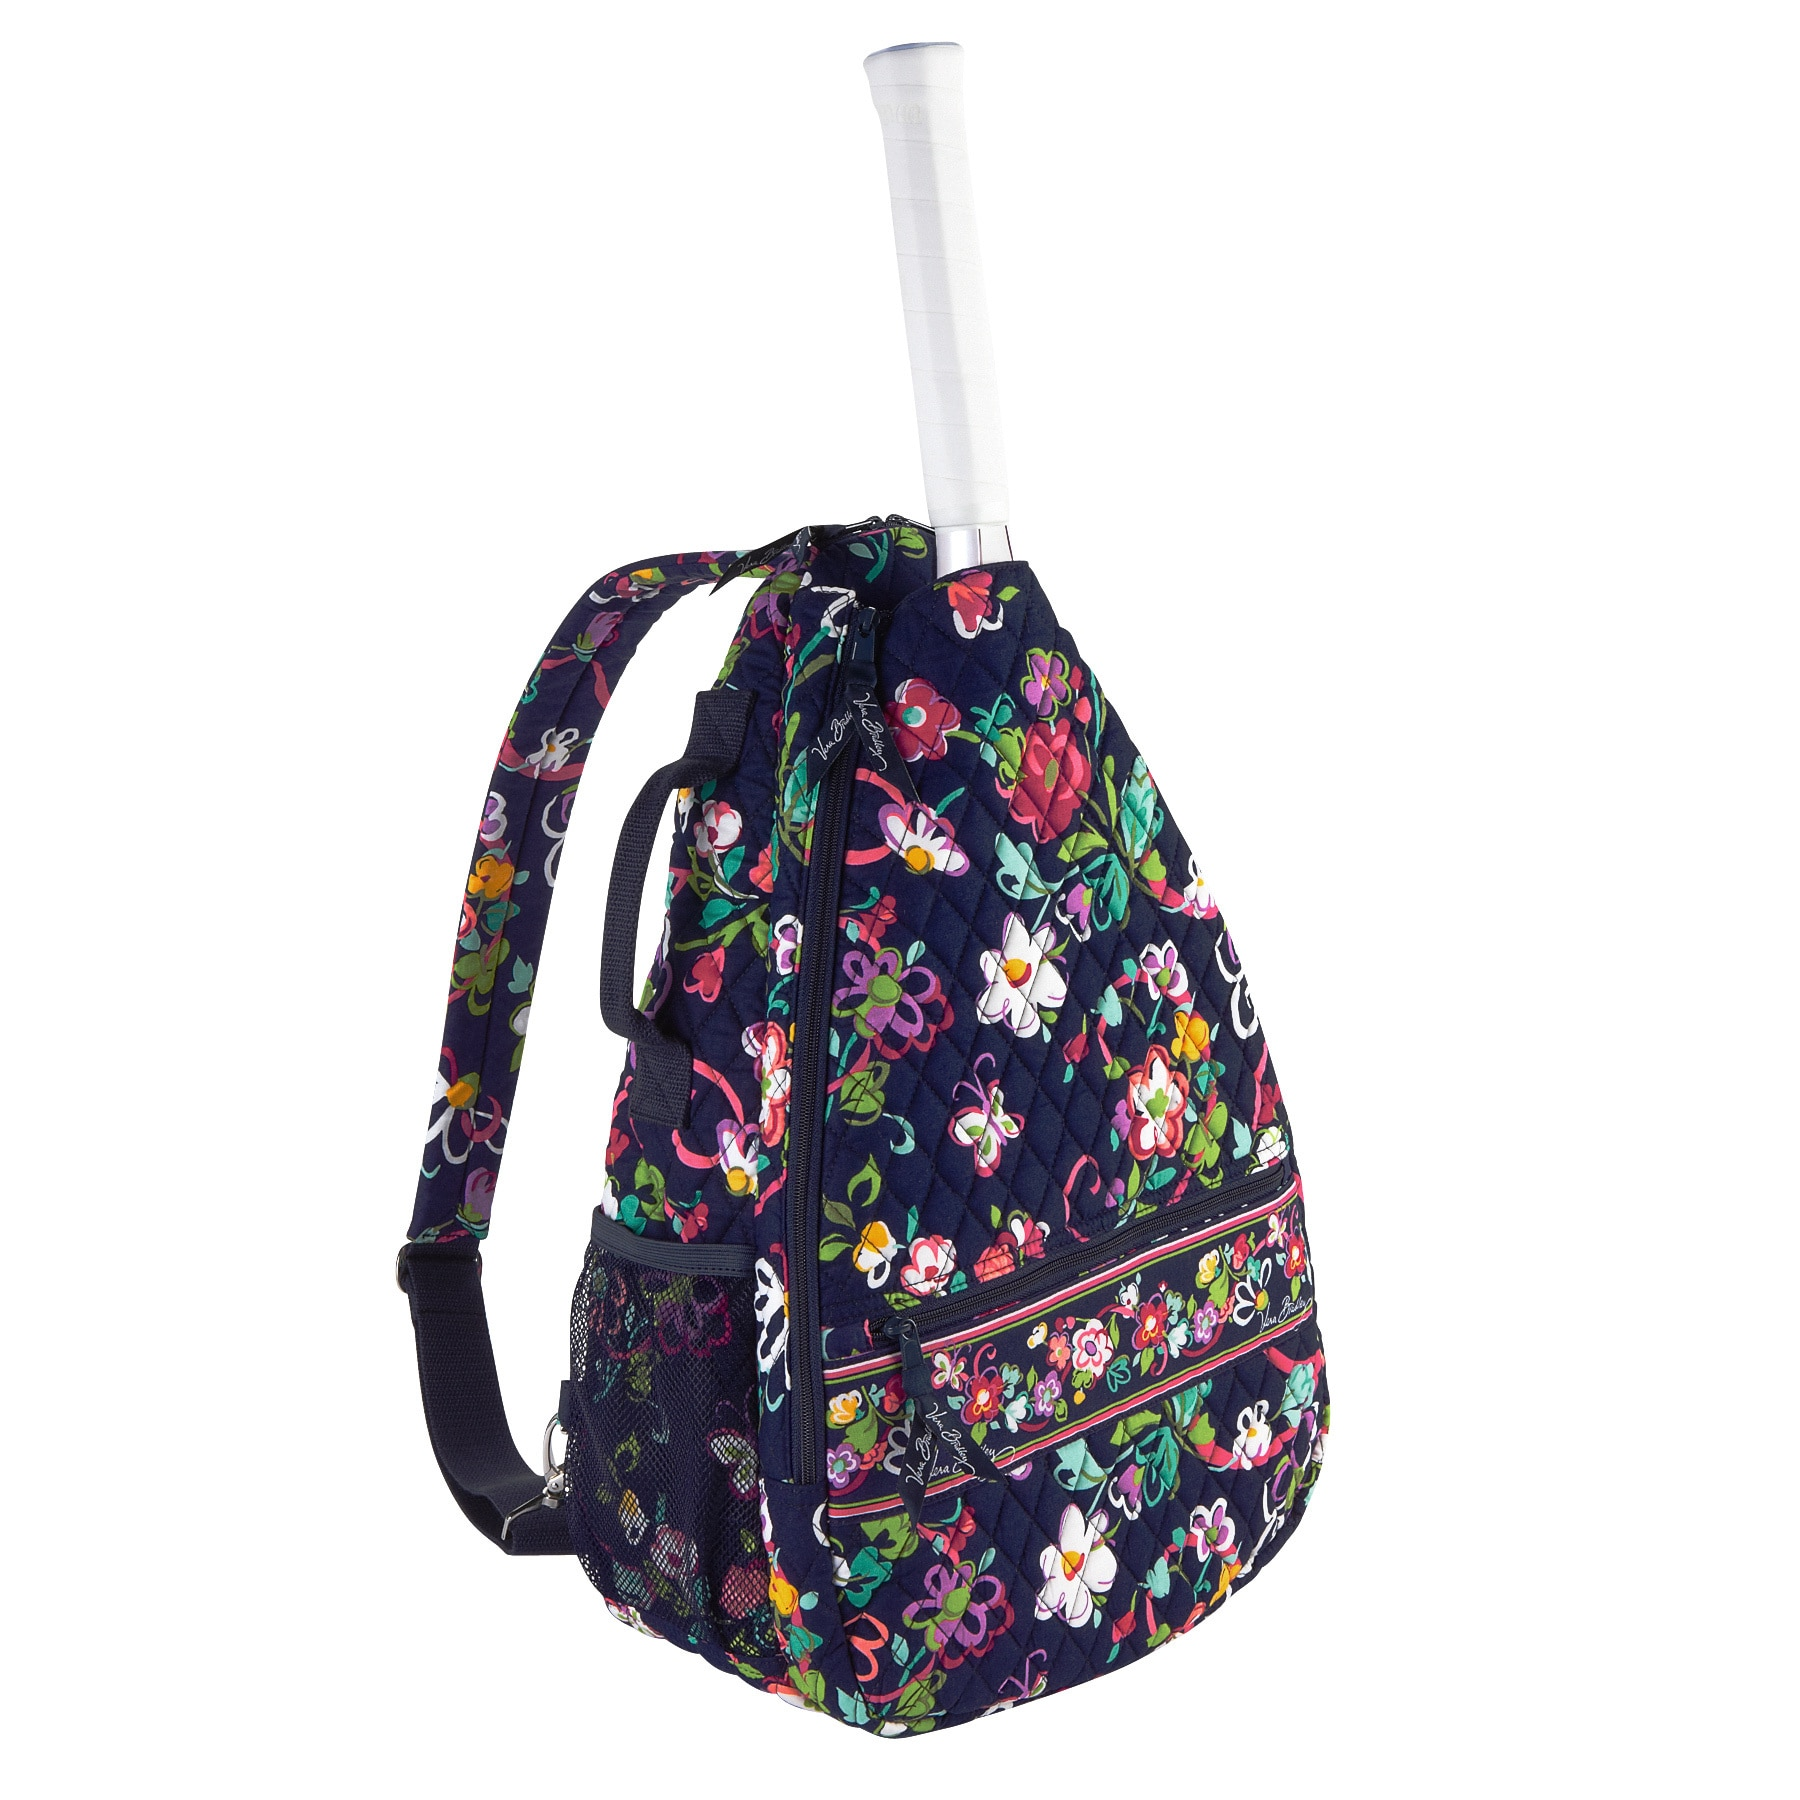 Shop Vera Bradley Ribbons Sling Tennis Backpack Shoulder Bag - Free  Shipping On Orders Over  45 - Overstock - 9376085 d574804ad4a23